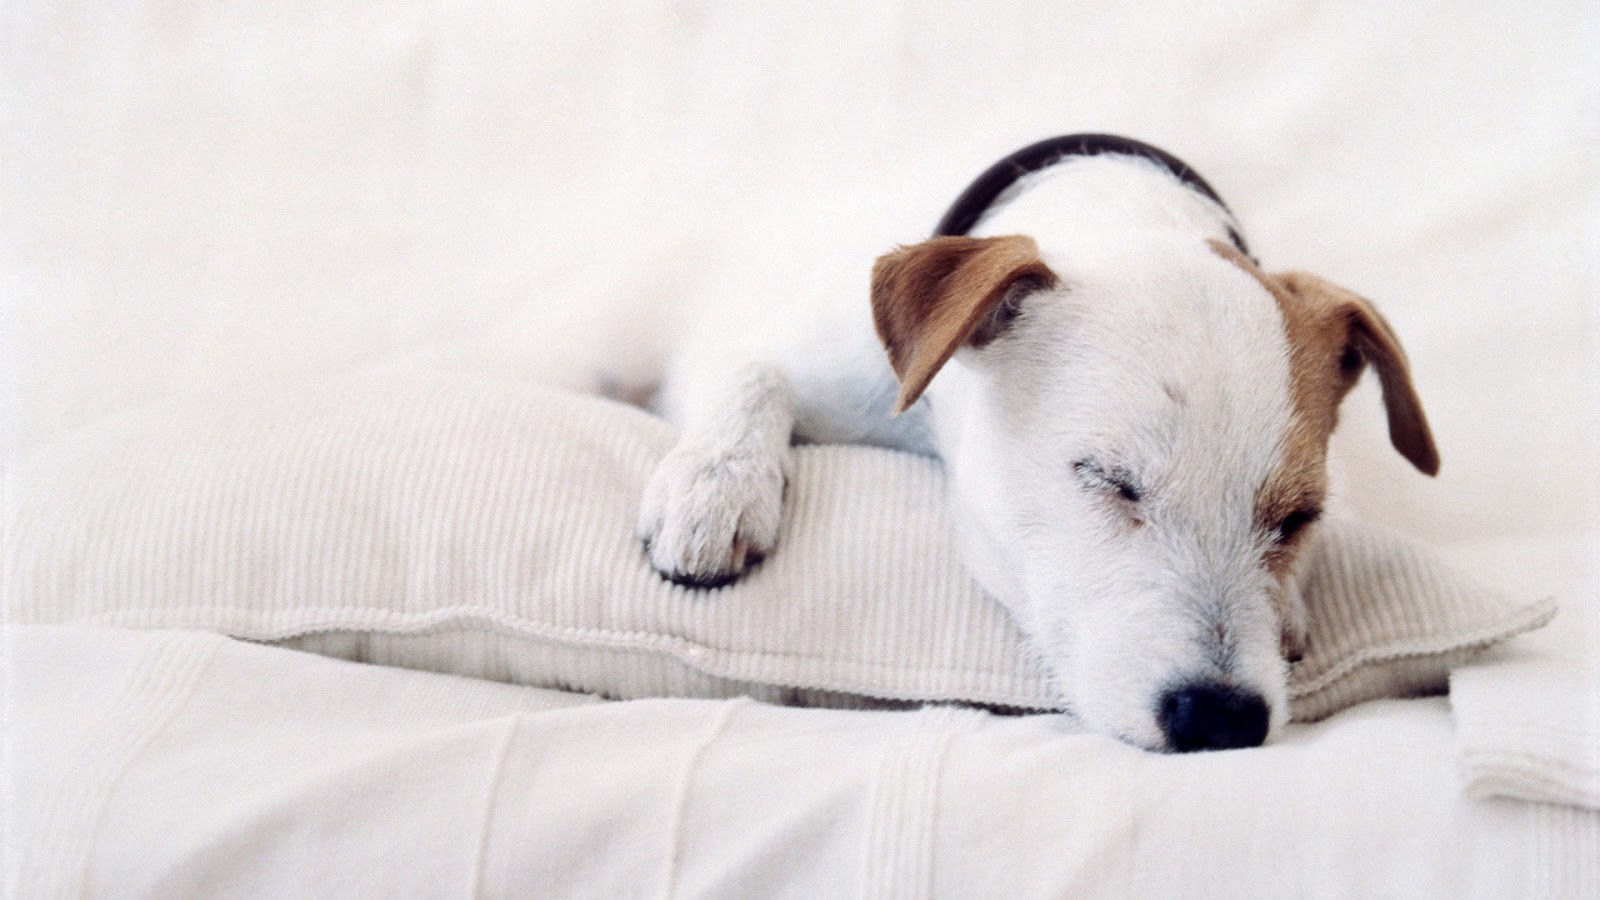 http://4.bp.blogspot.com/-6_EvtZogYXE/T3ShCABHg_I/AAAAAAAABBw/vCph-W09X5w/s1600/Cute+Dog+in+Bed+HD+wallpaper.jpg